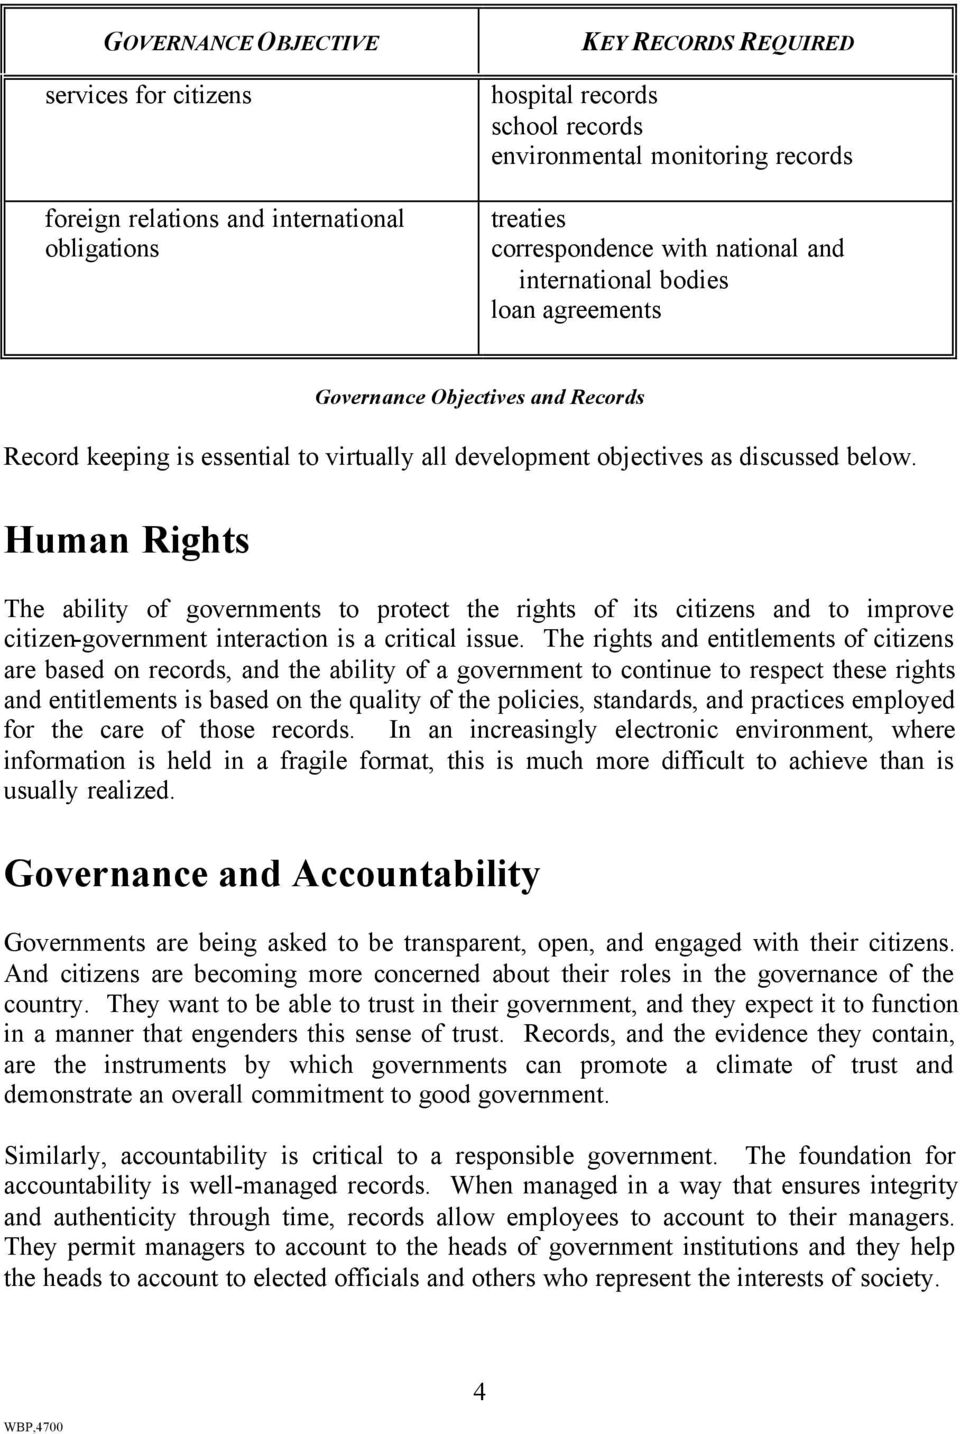 Human Rights The ability of governments to protect the rights of its citizens and to improve citizen-government interaction is a critical issue.